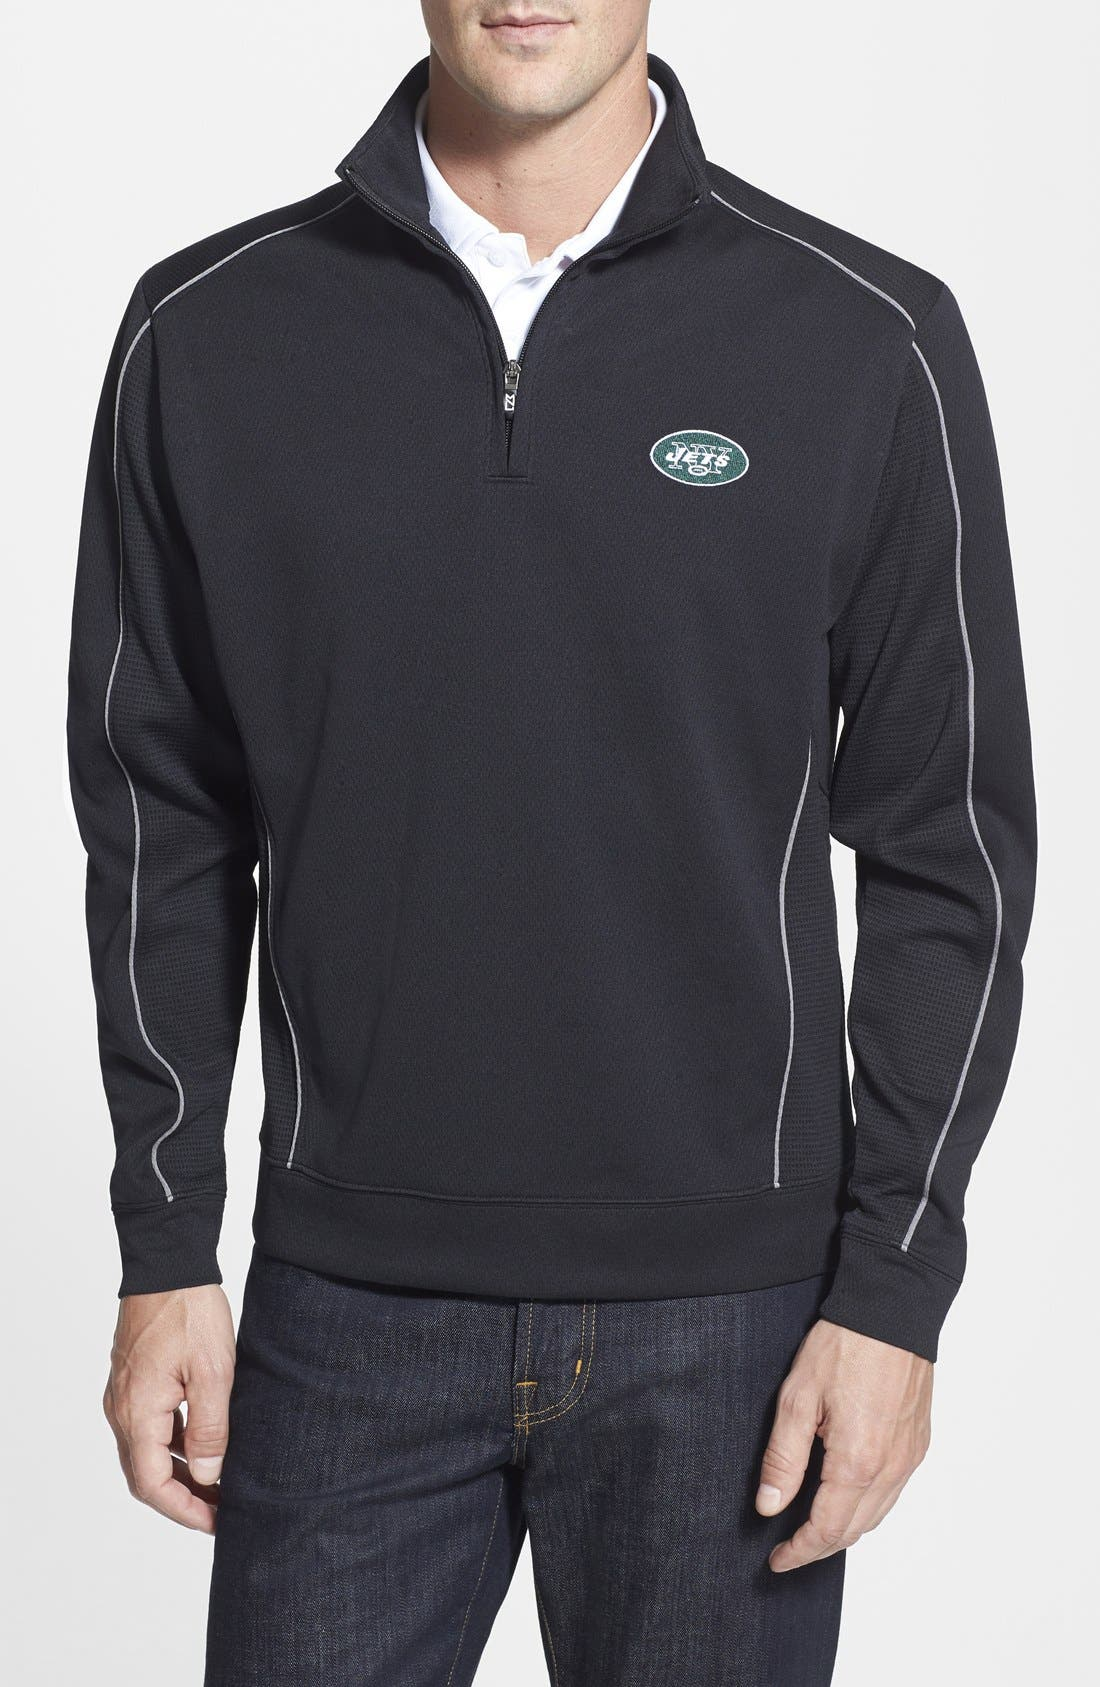 Main Image - Cutter & Buck New York Jets - Edge DryTec Moisture Wicking Half Zip Pullover